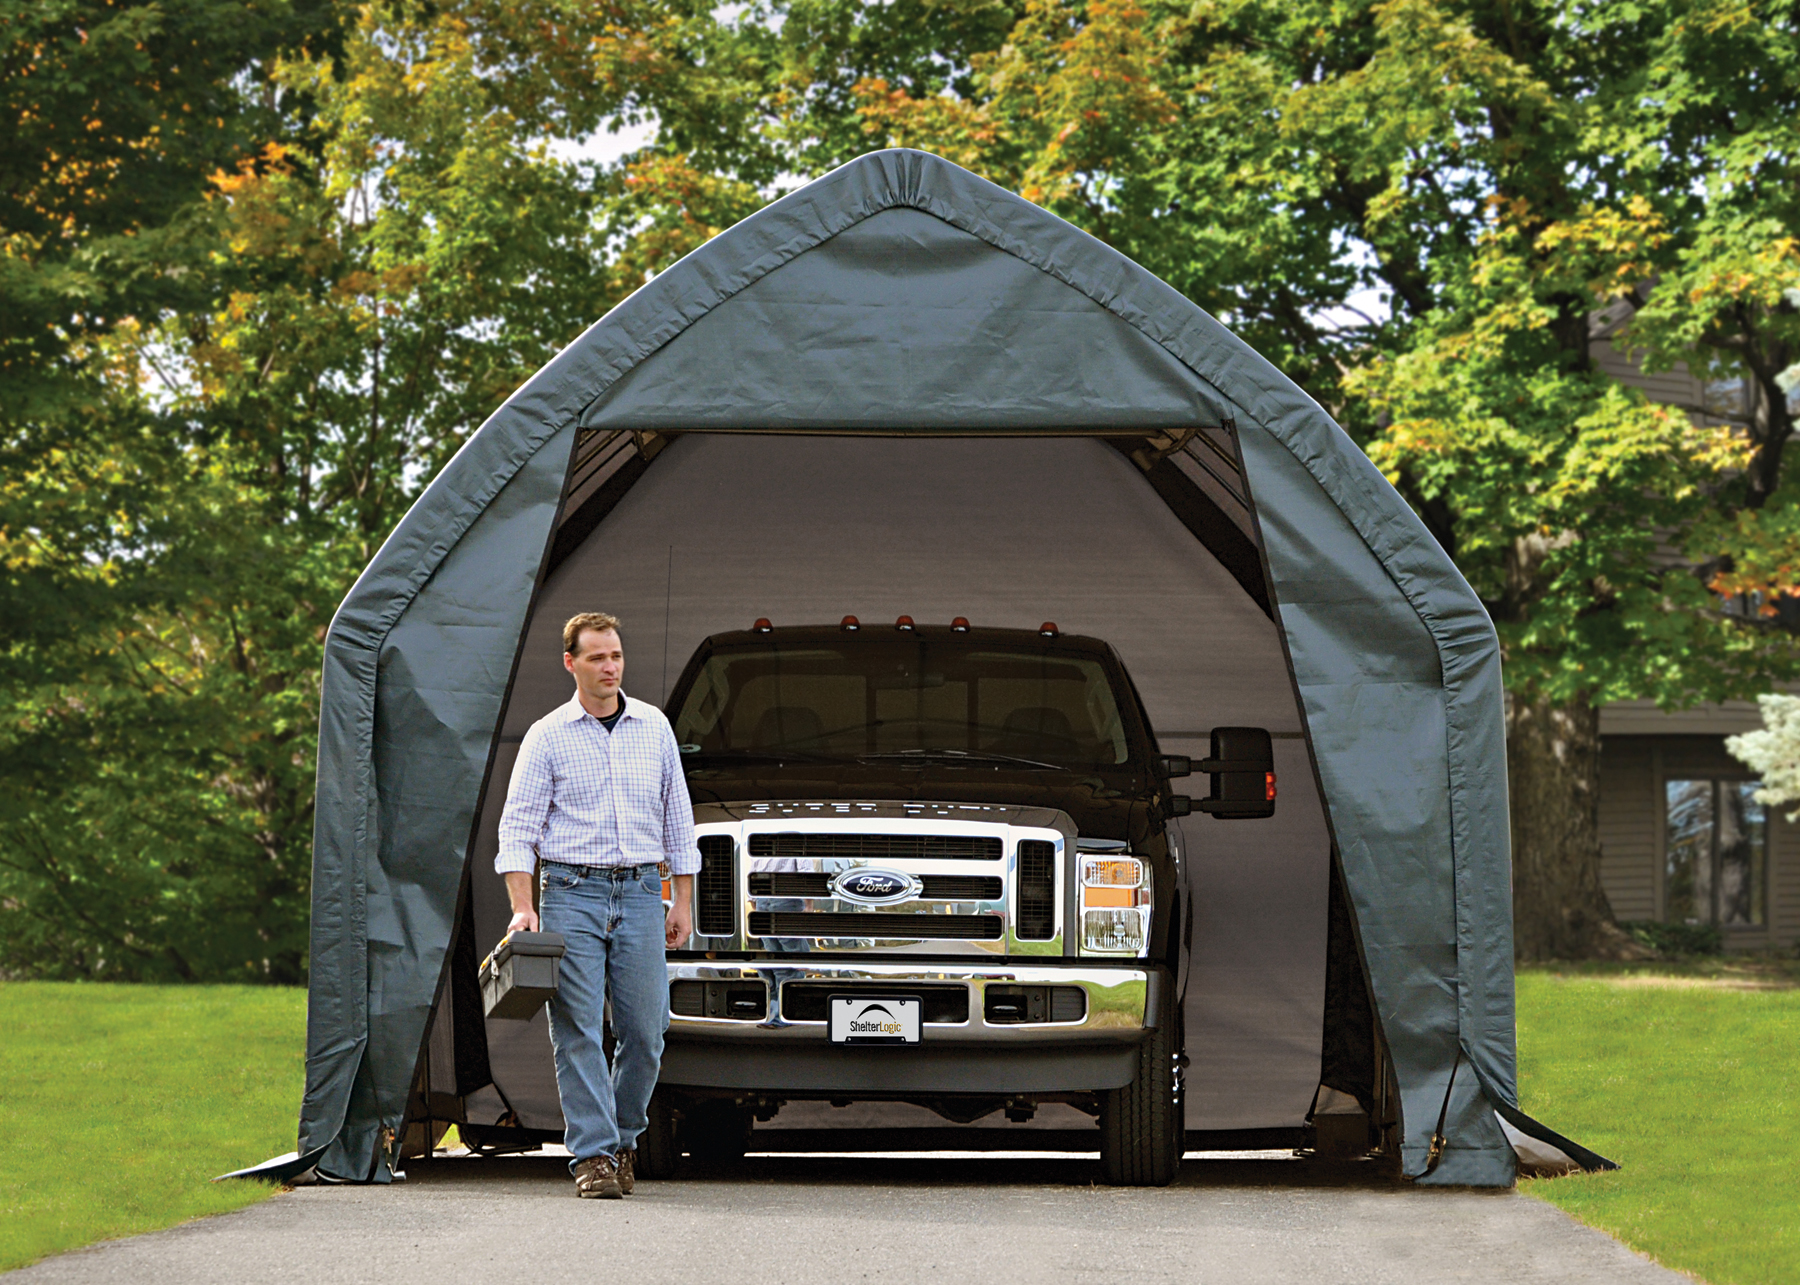 Truck garage shelter & Portable Car Garages From Costco? Read This First! | Portable Car ...